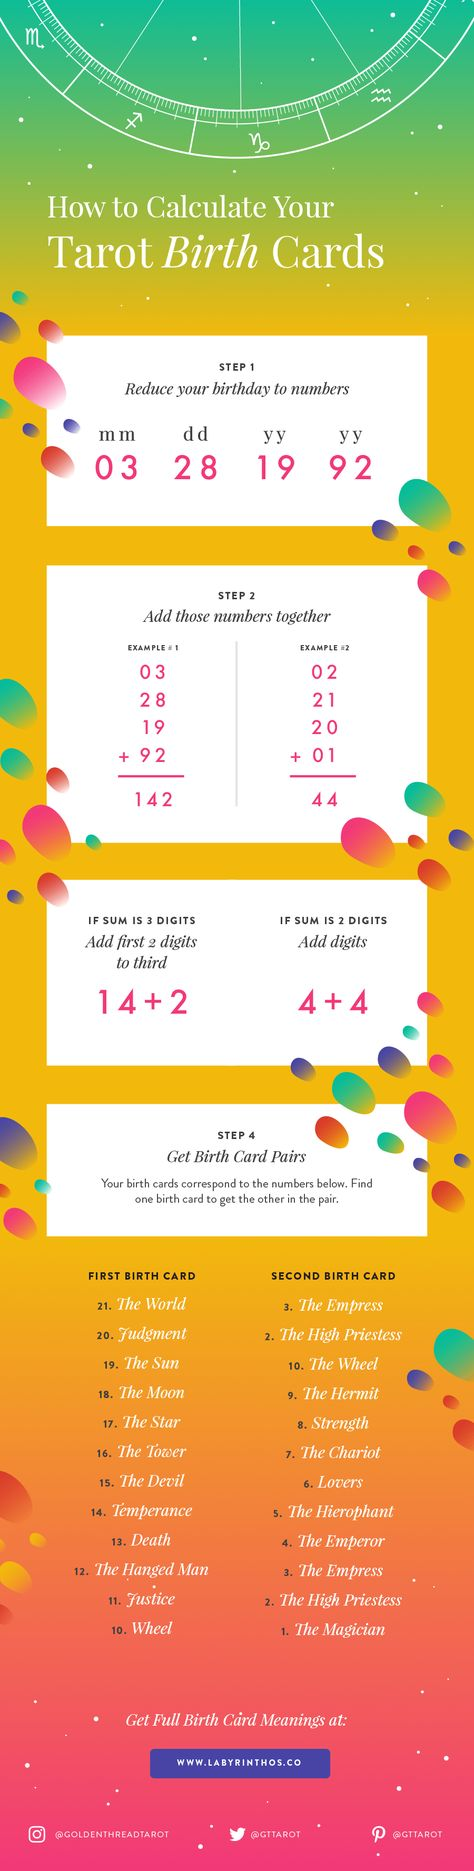 How to calculate your tarot birth card infographic. Plus tarot birth card meanings in the article! Infographics about witchcraft, wicca, mysticism, magick, rituals, paganism, zodiac, astrology, spells, and the occult.